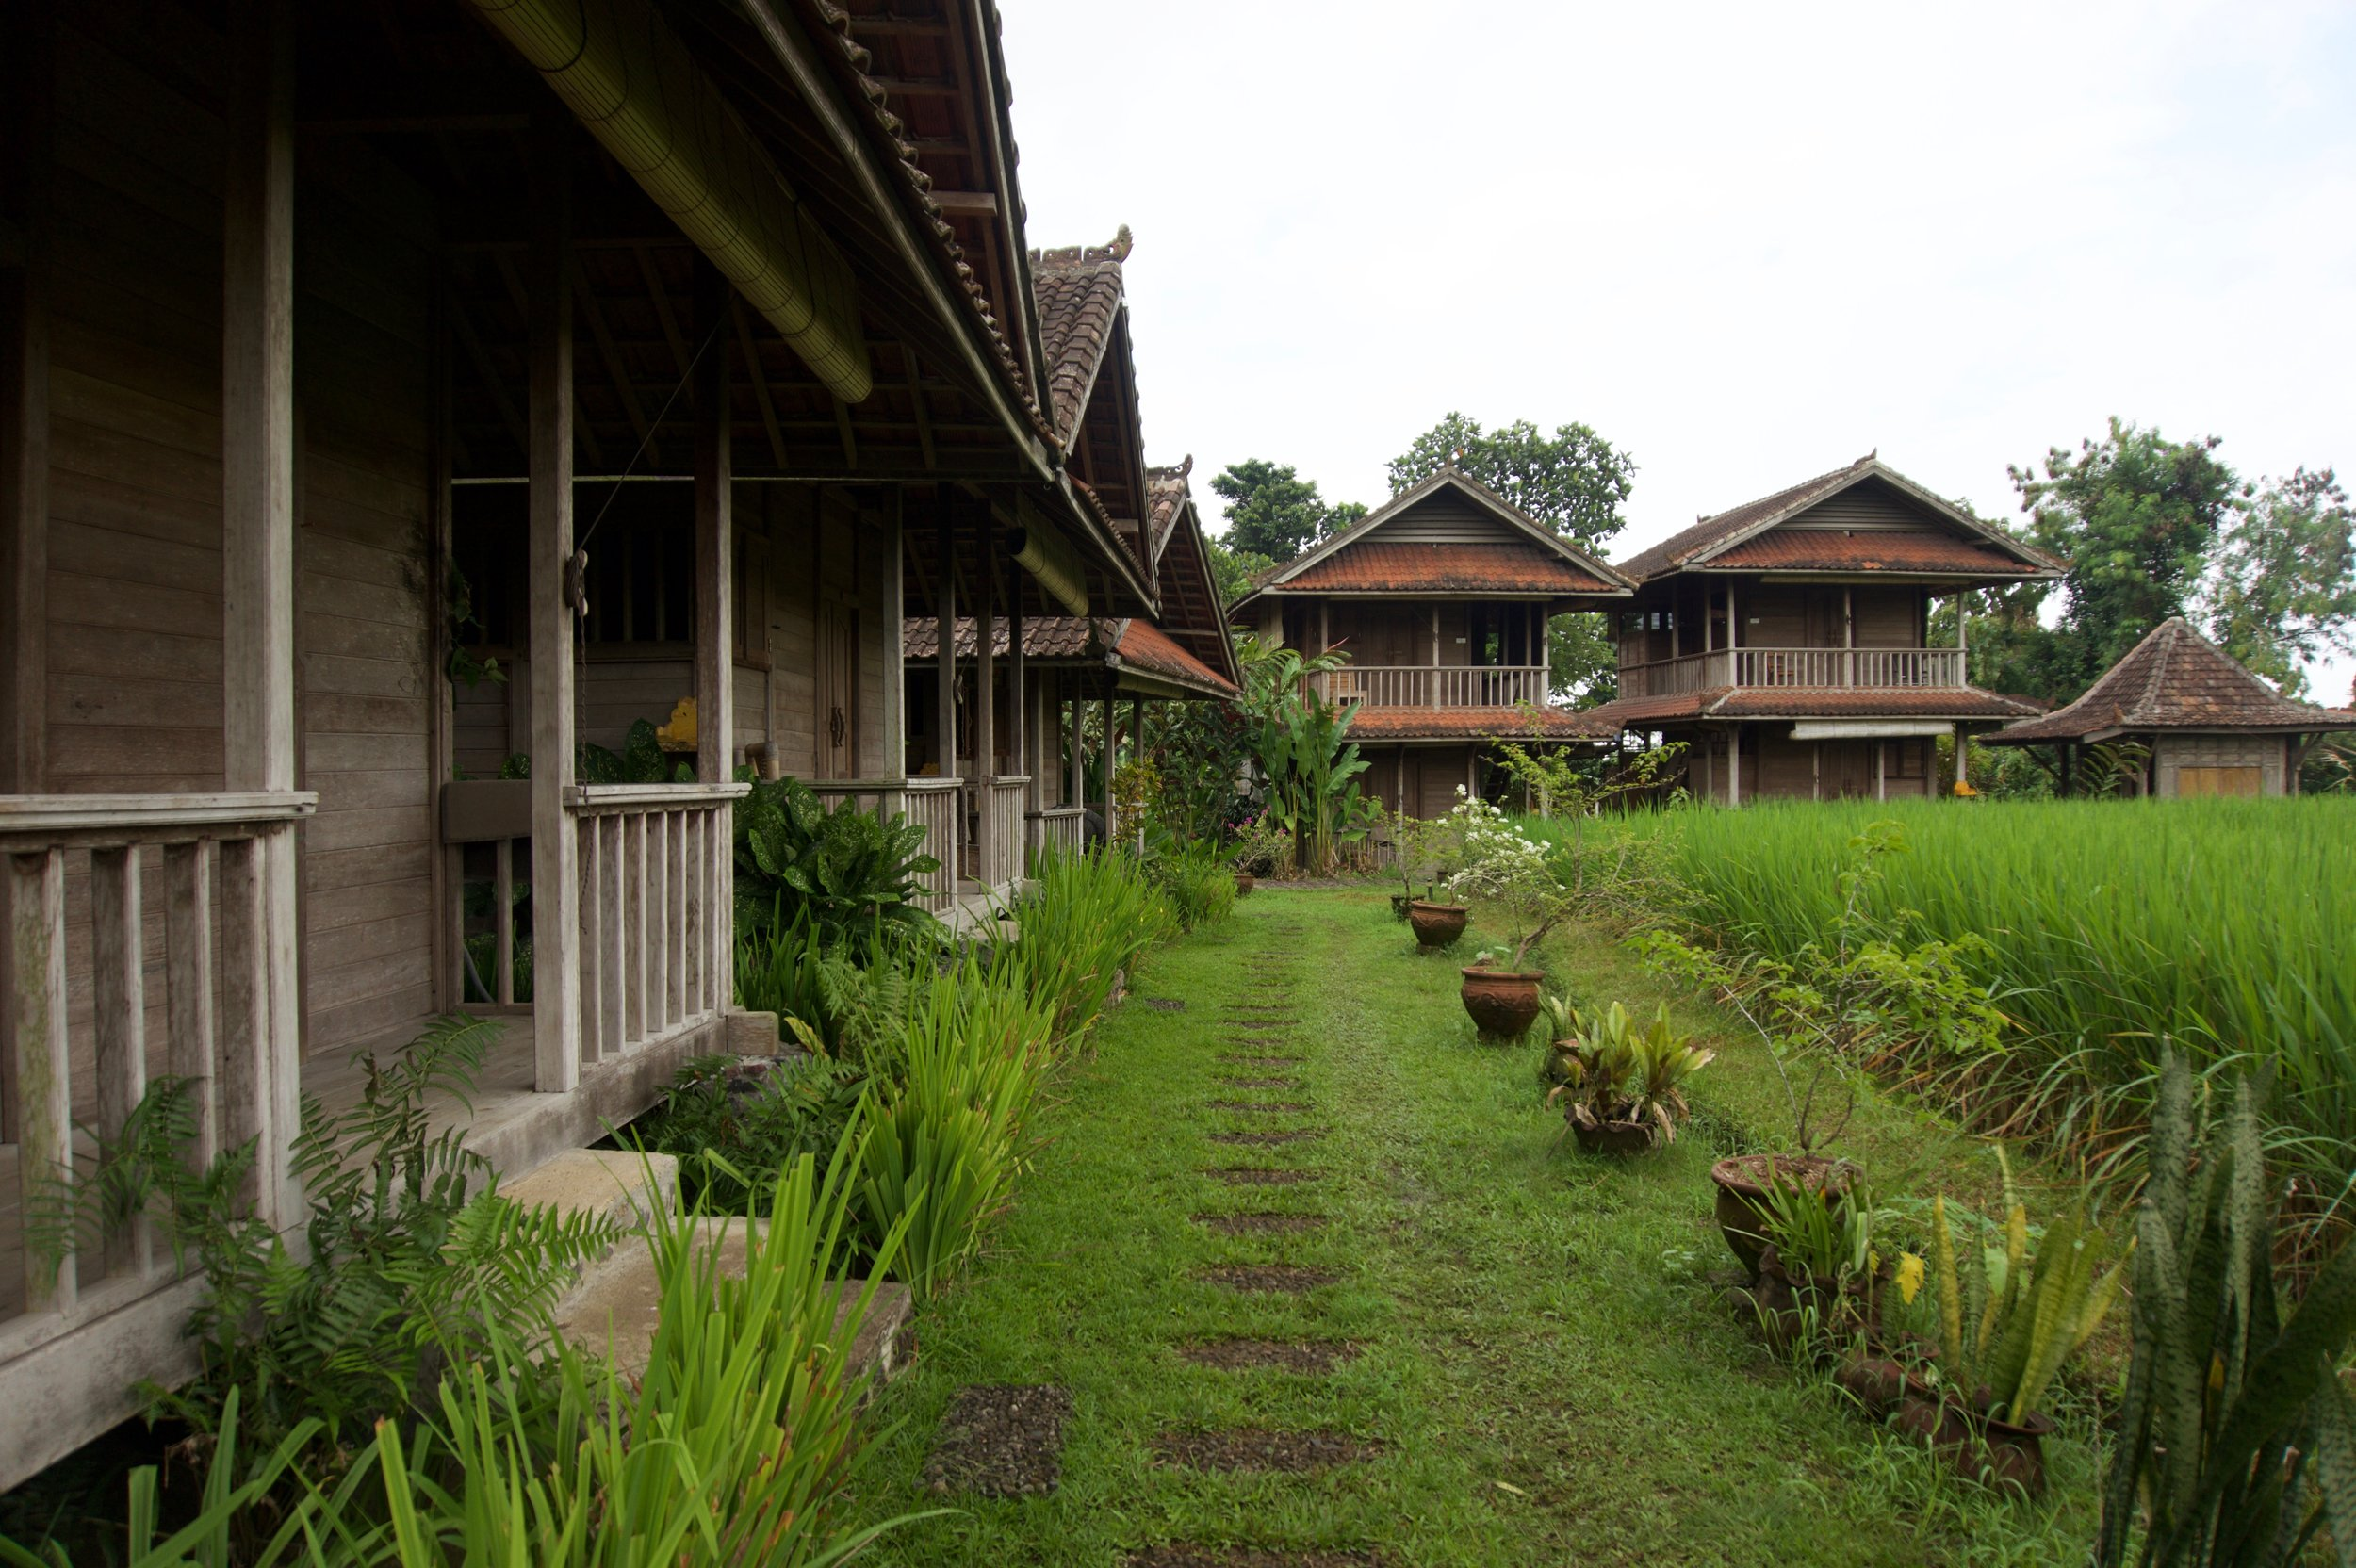 The private bungalows